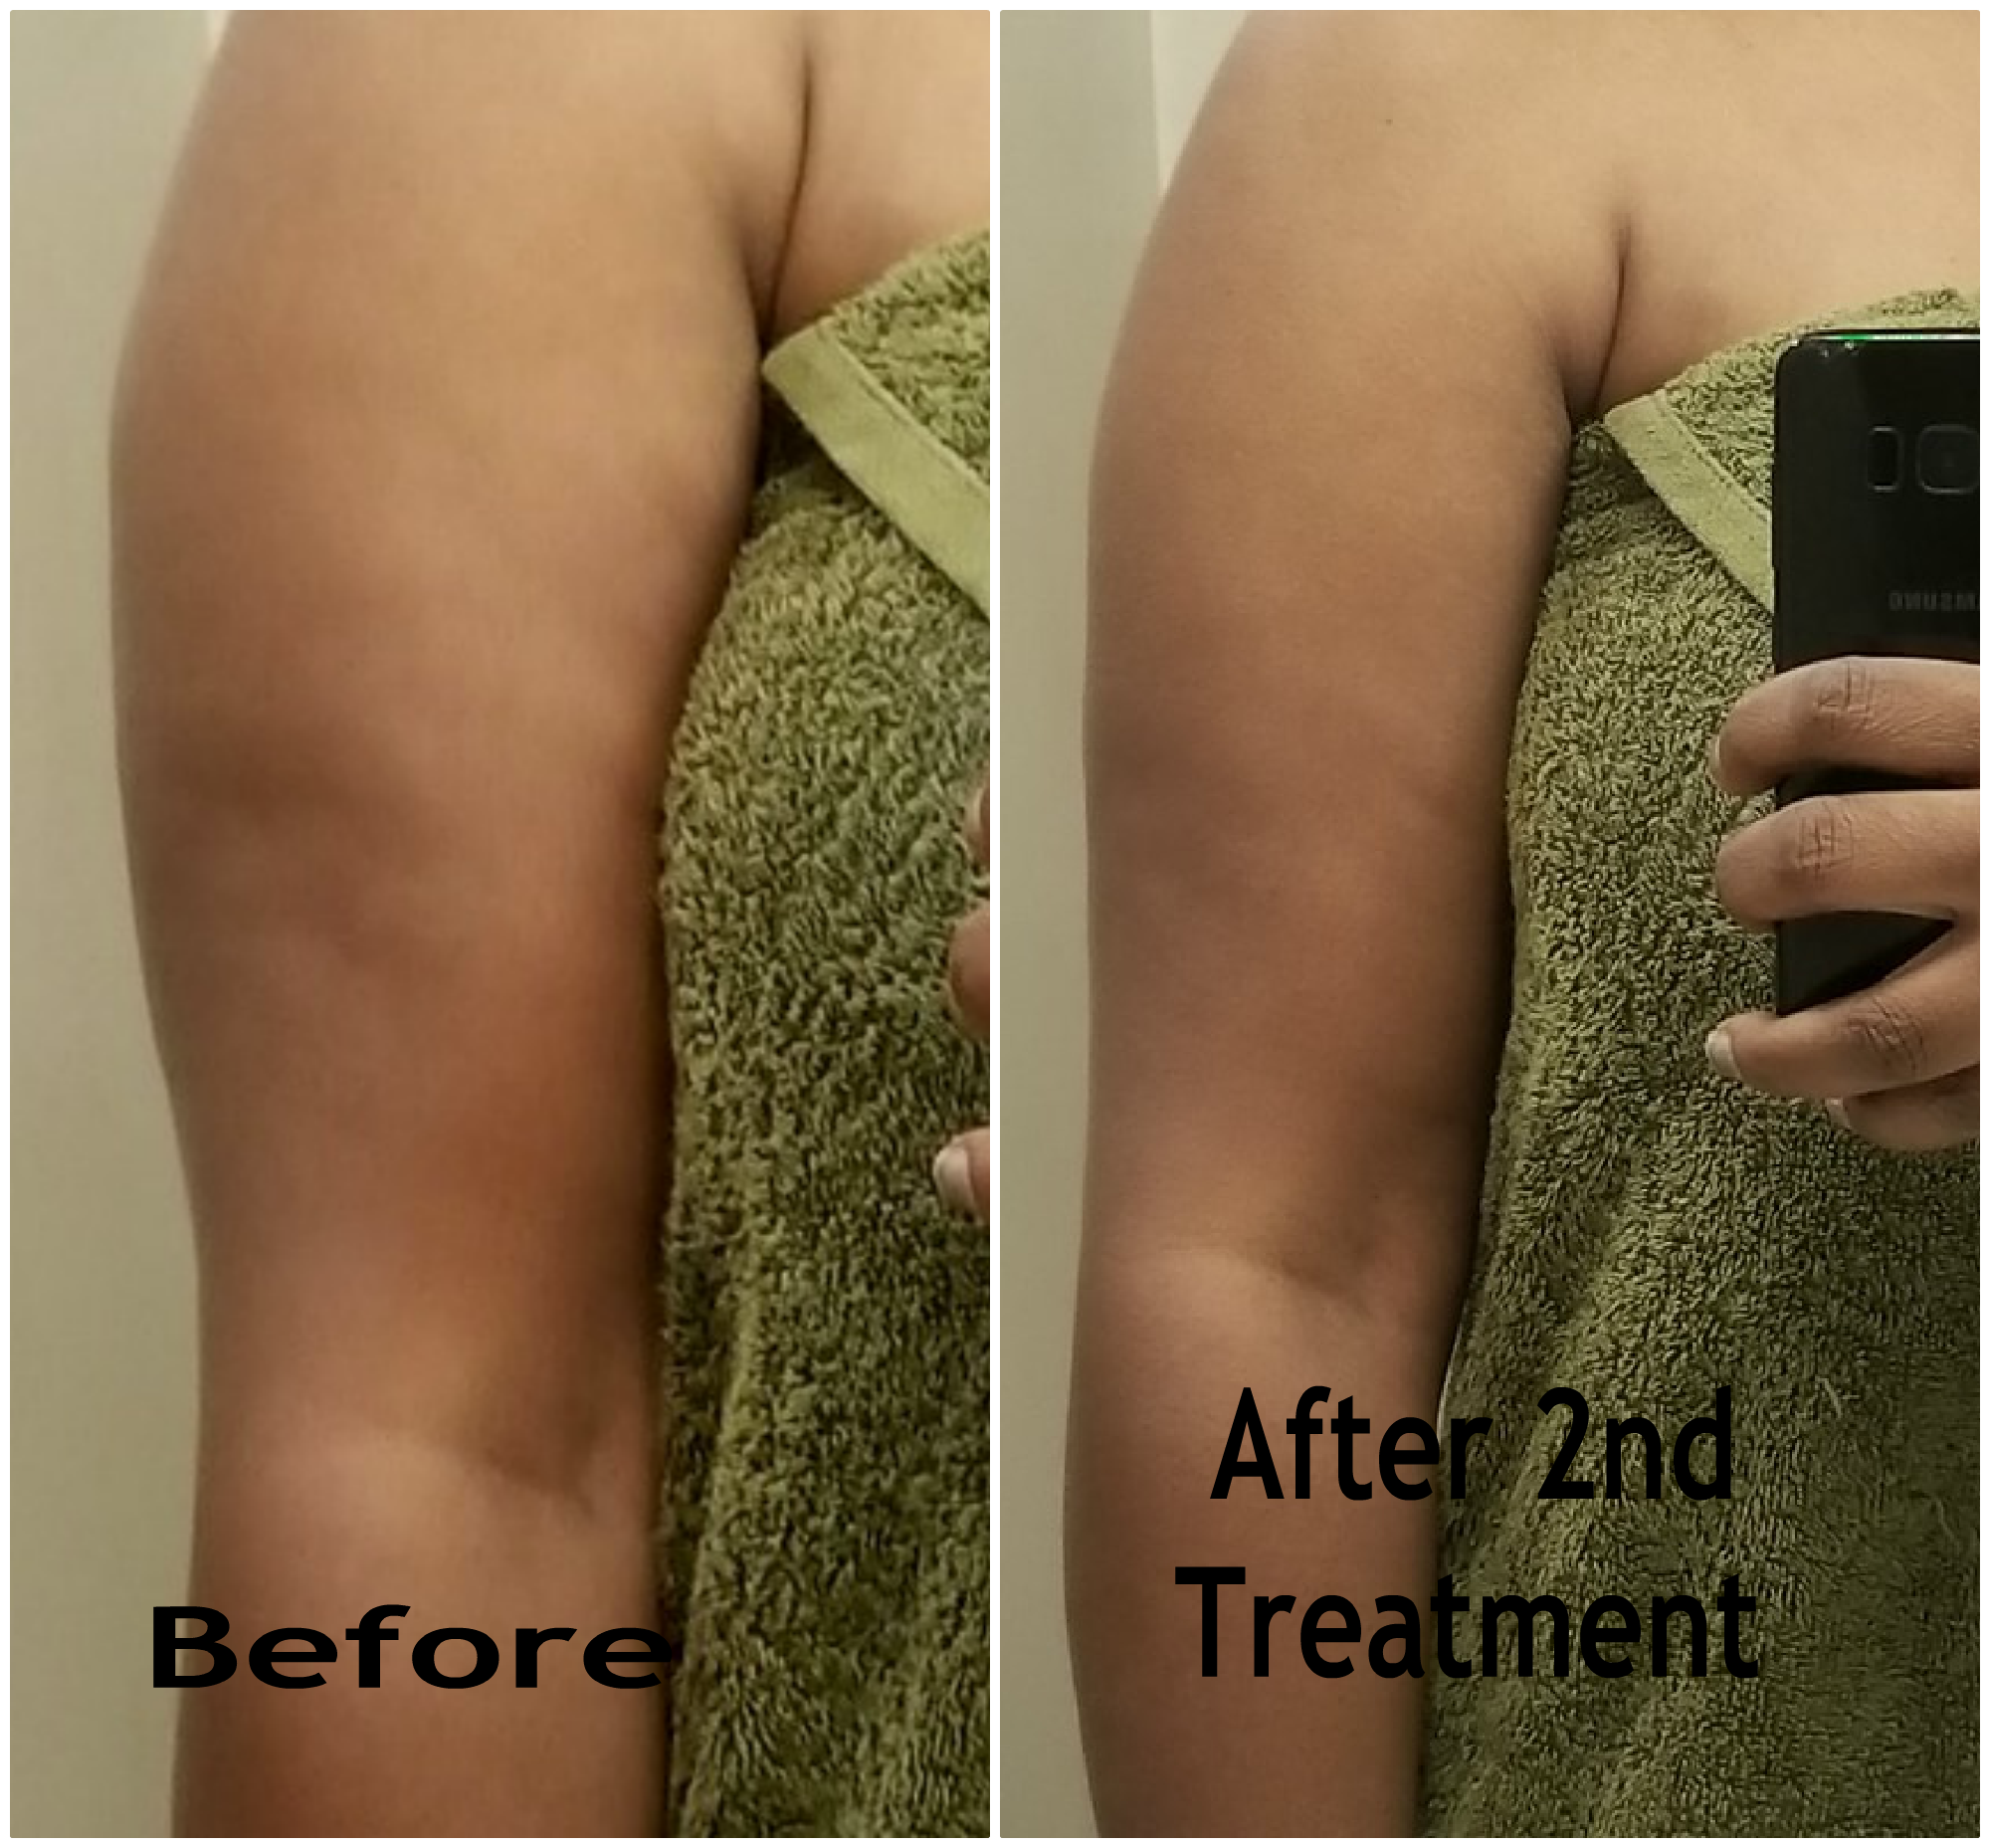 THE BELLA SHAPE iCoone EXPERIENCE - BEFORE & AFTER RESULTS (part 1)